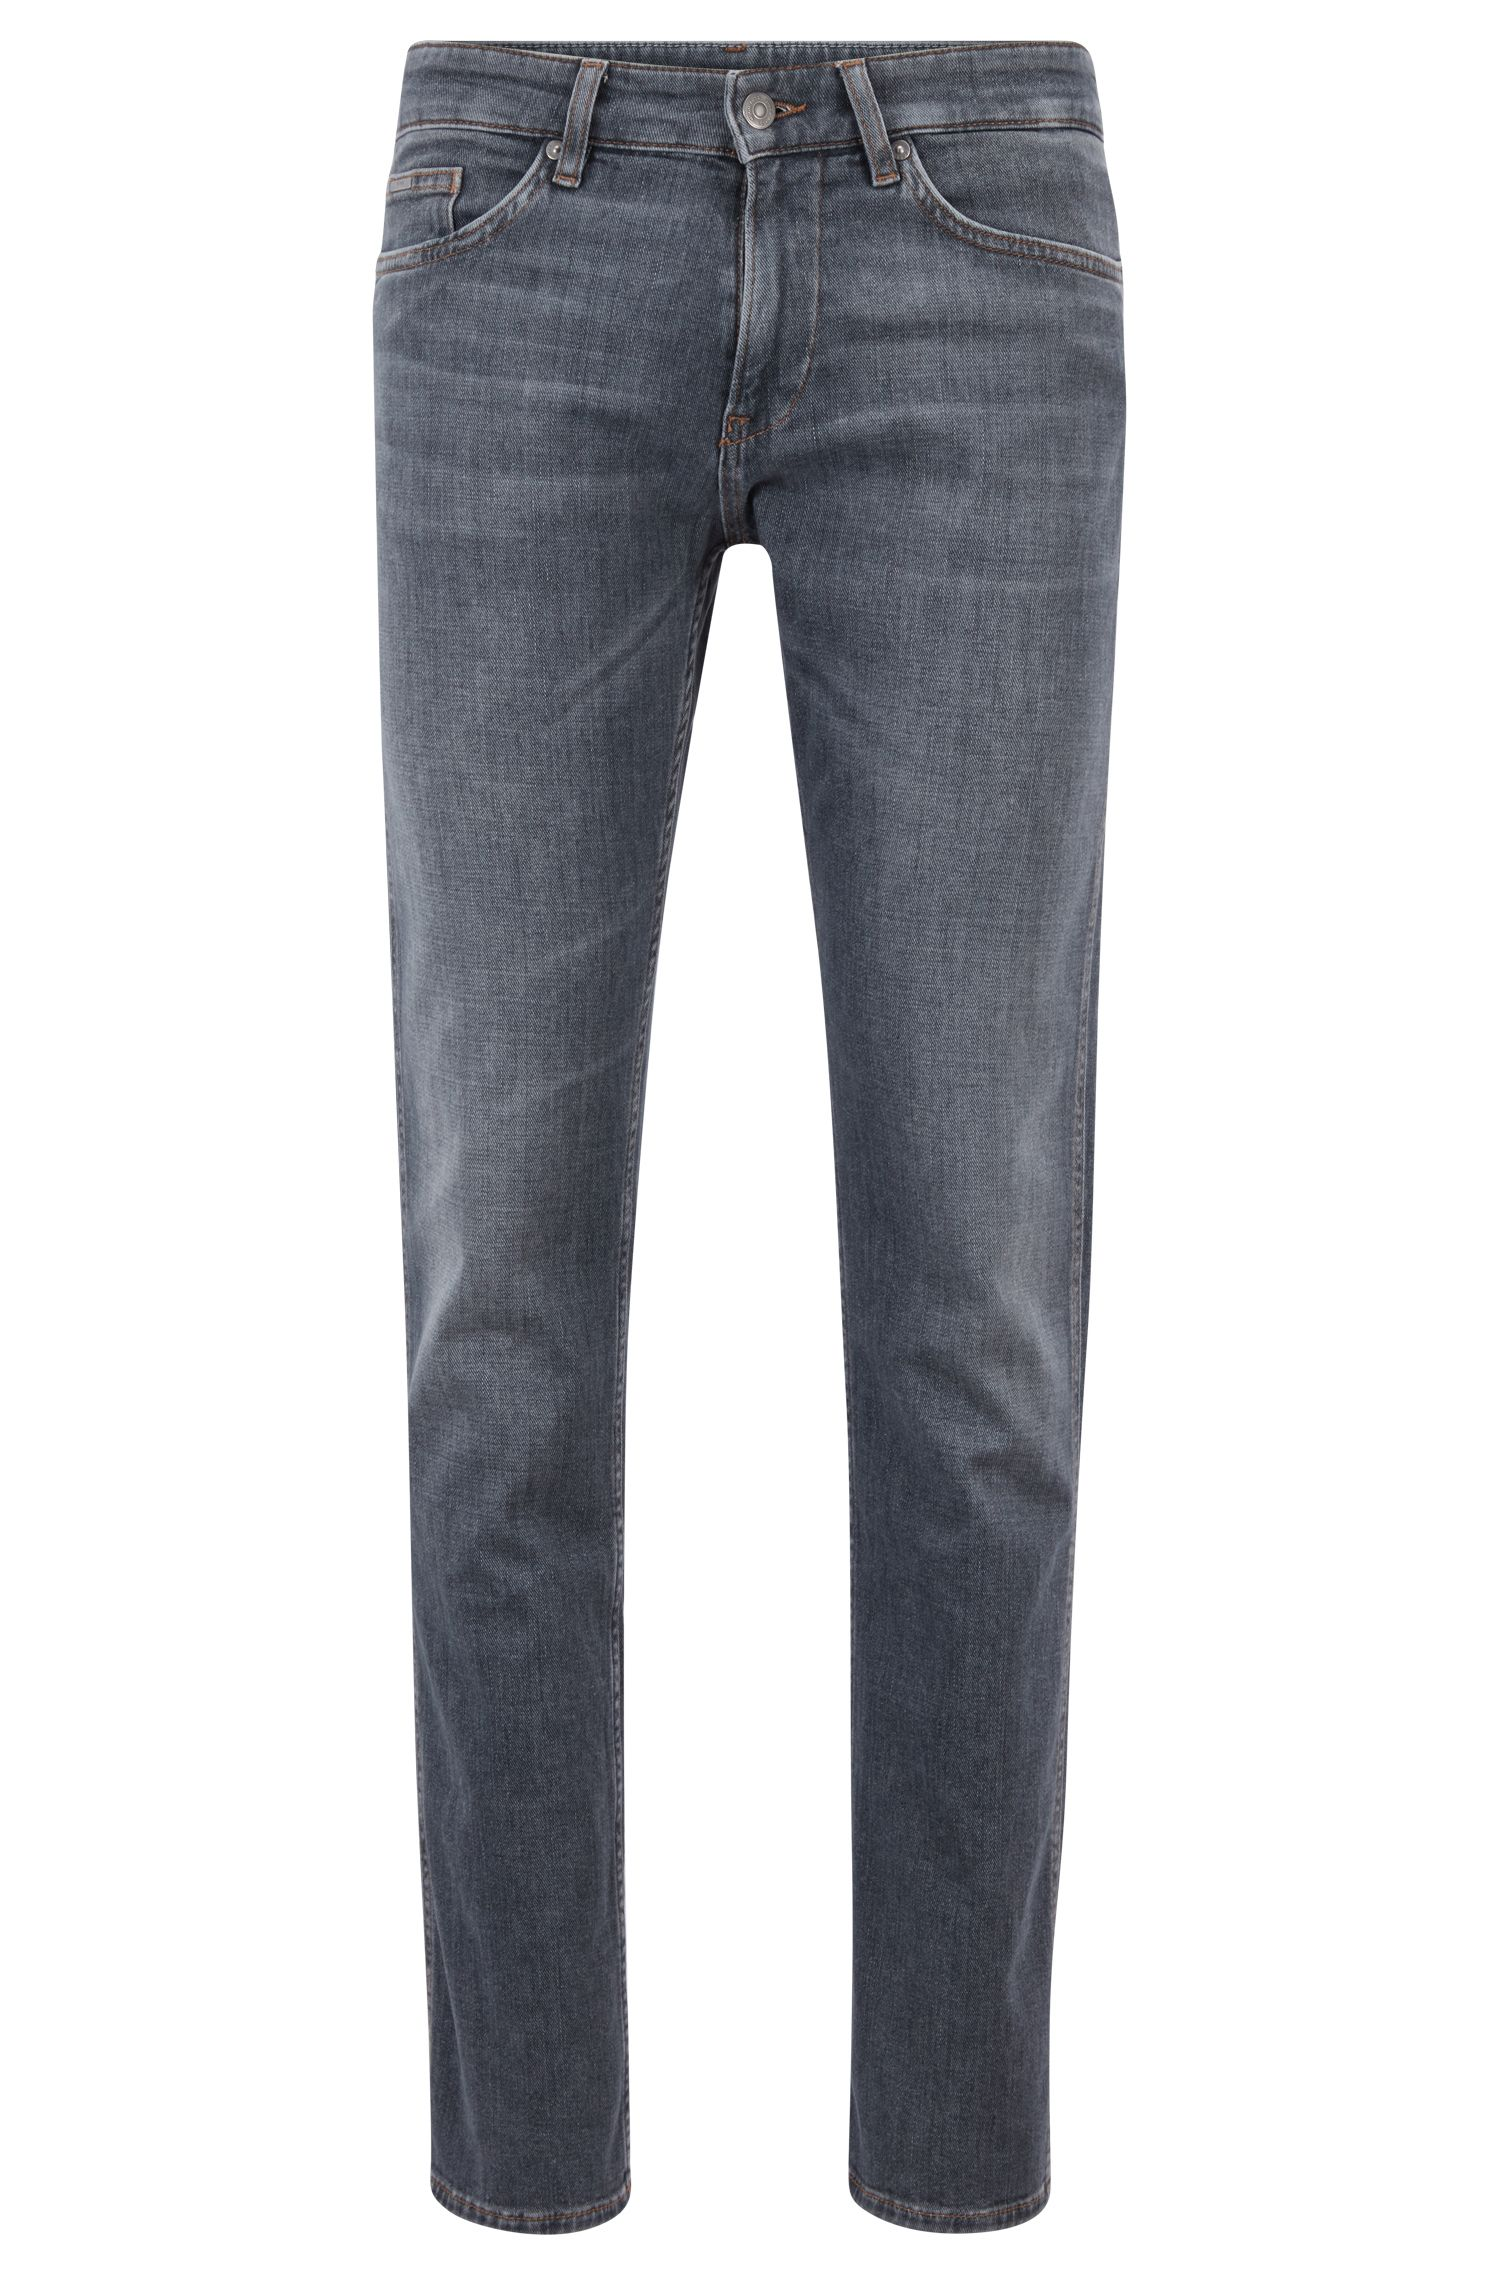 Vaqueros slim fit en denim elástico italiano cruzado de color gris, Gris marengo